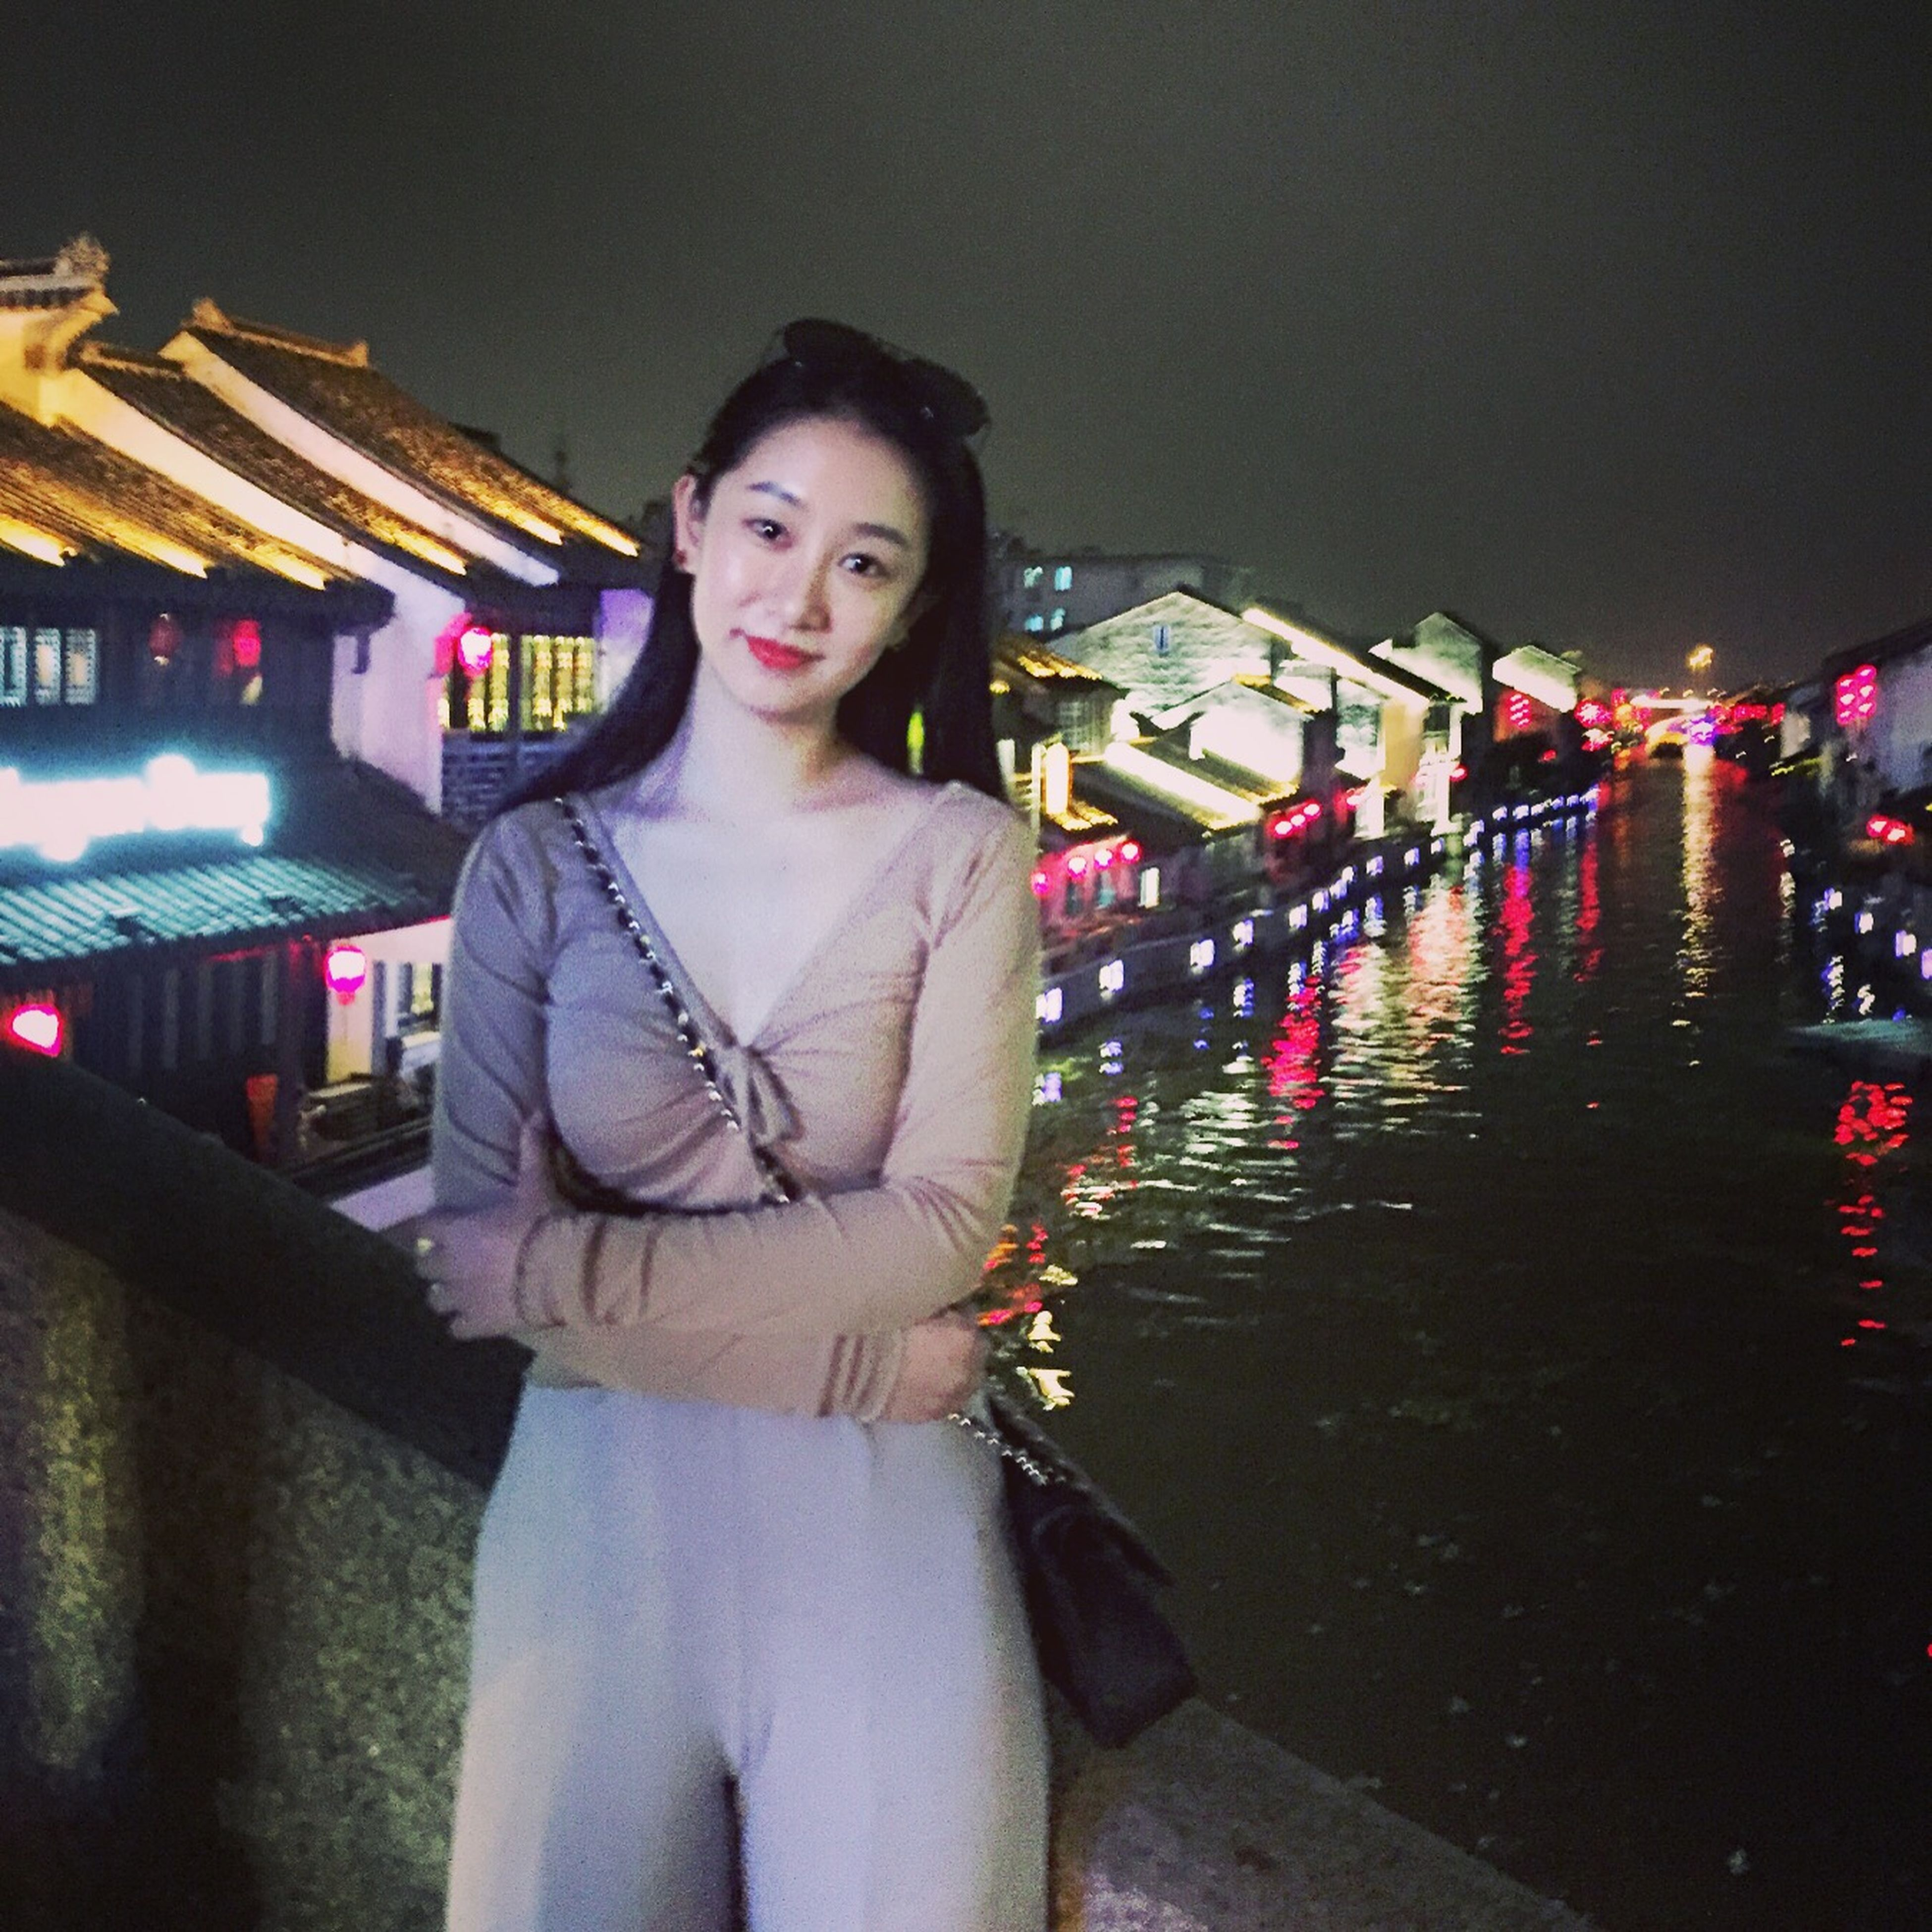 lifestyles, night, standing, young adult, looking at camera, person, casual clothing, front view, portrait, three quarter length, leisure activity, young women, built structure, illuminated, waist up, smiling, building exterior, architecture